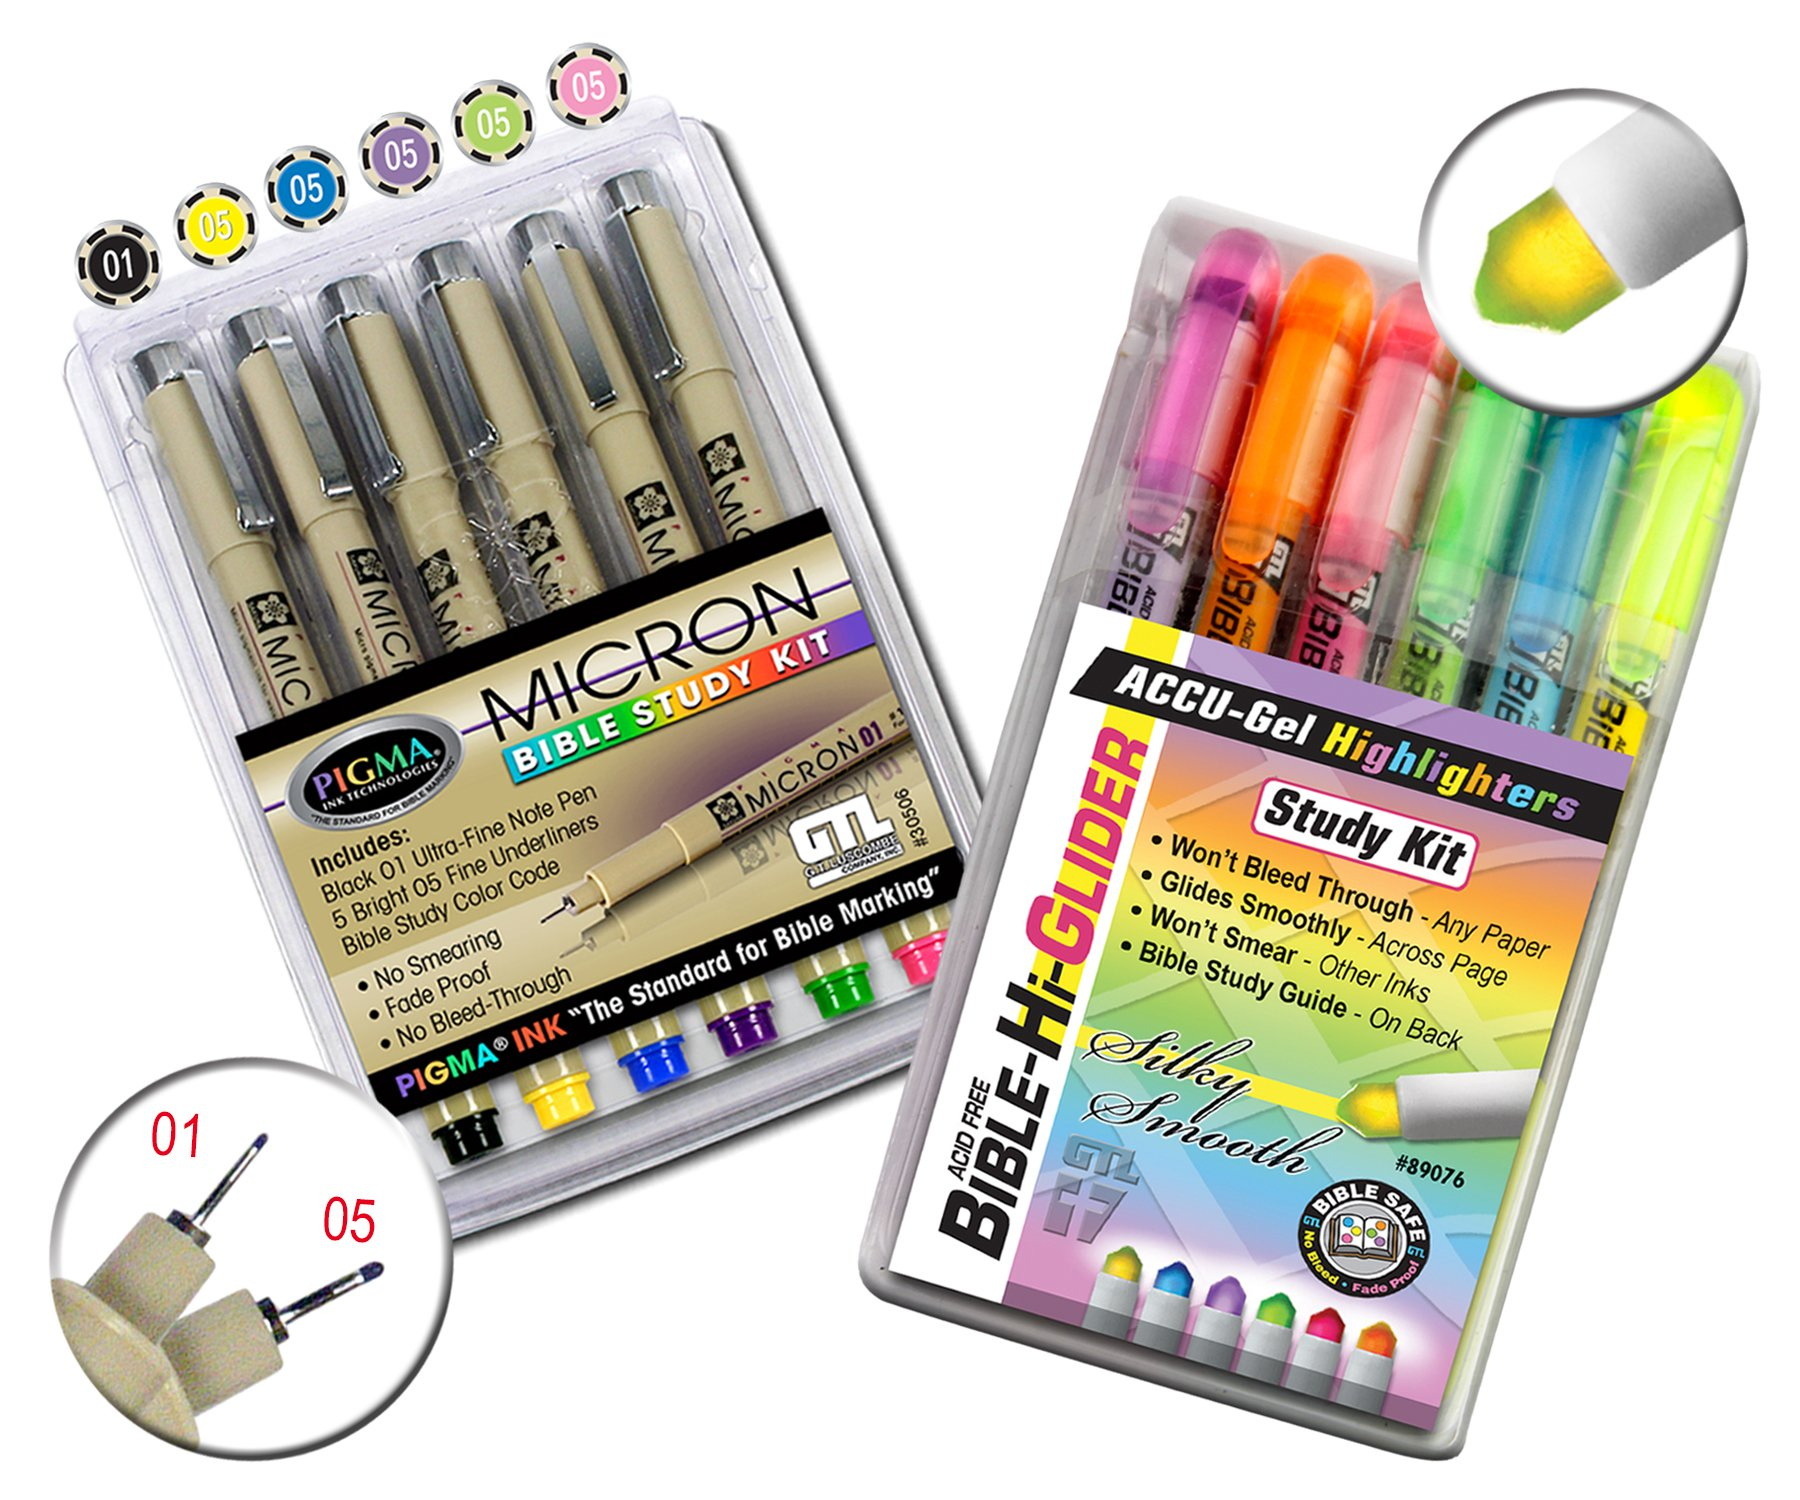 Accu-Gel Bible Highlighter Study Kit (Pack of 6) + Pigma Micron 01 Fine & 05 Medium Point Bible Study Kit (Set of 6) - The Deluxe Multi-Color Study Kit by G.T. Luscombe Company, Inc. (Image #8)